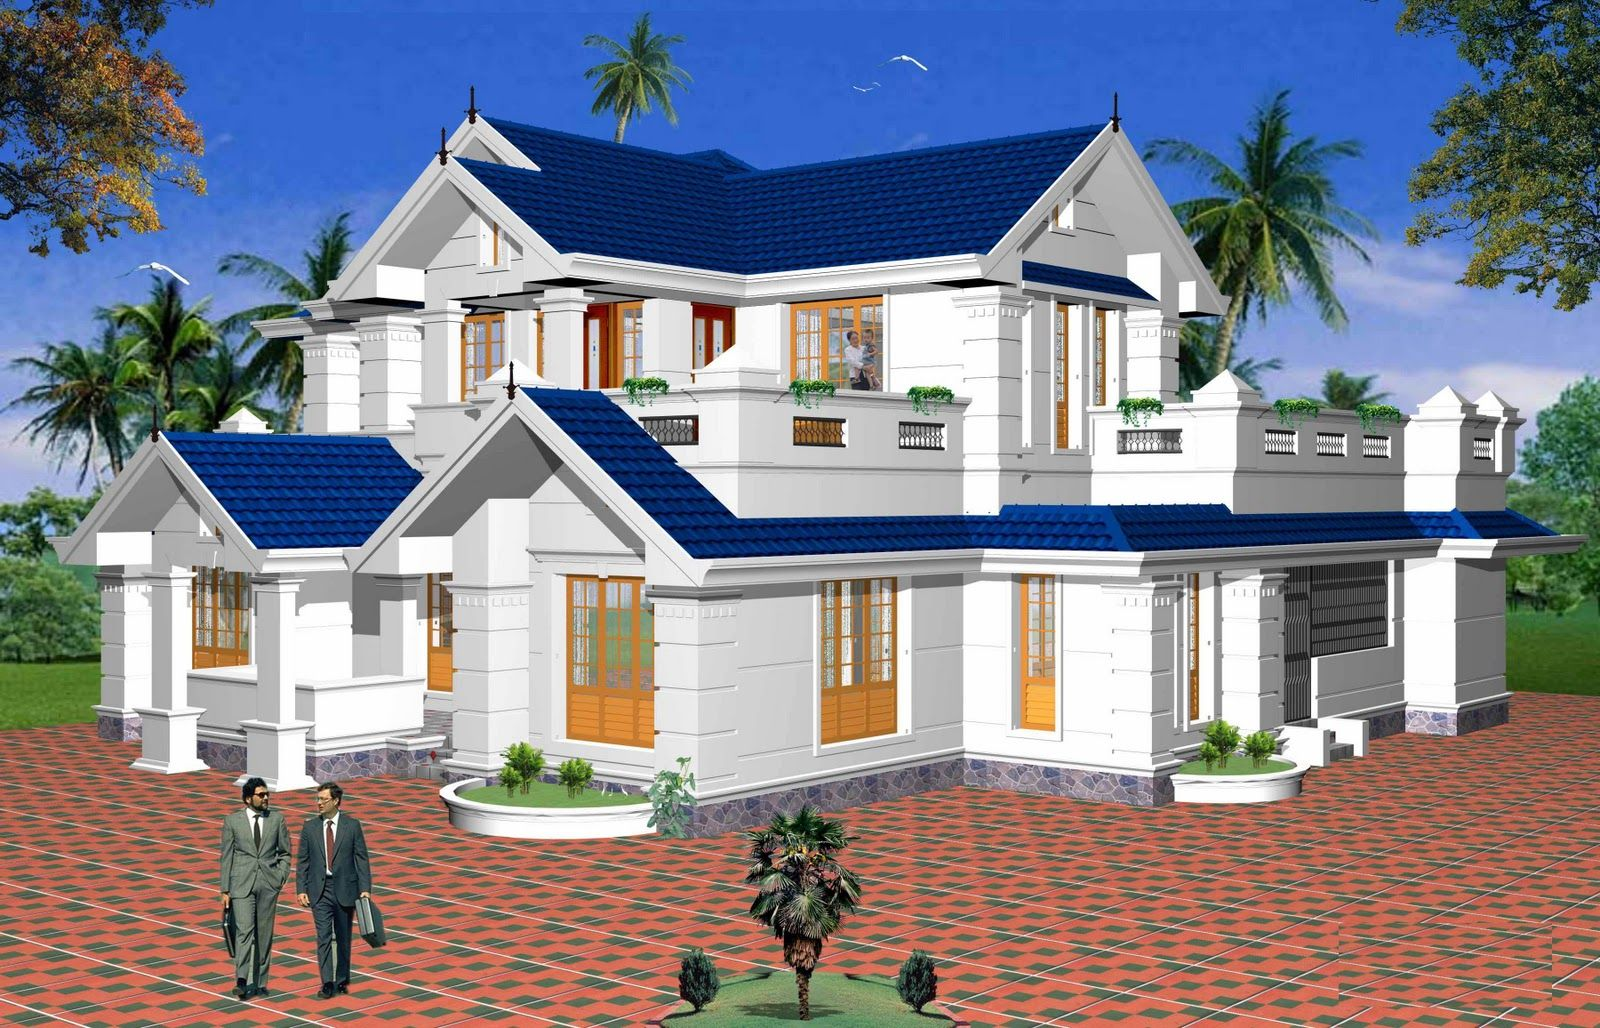 Architecture Design For Home house. home design types different types of house designs in india